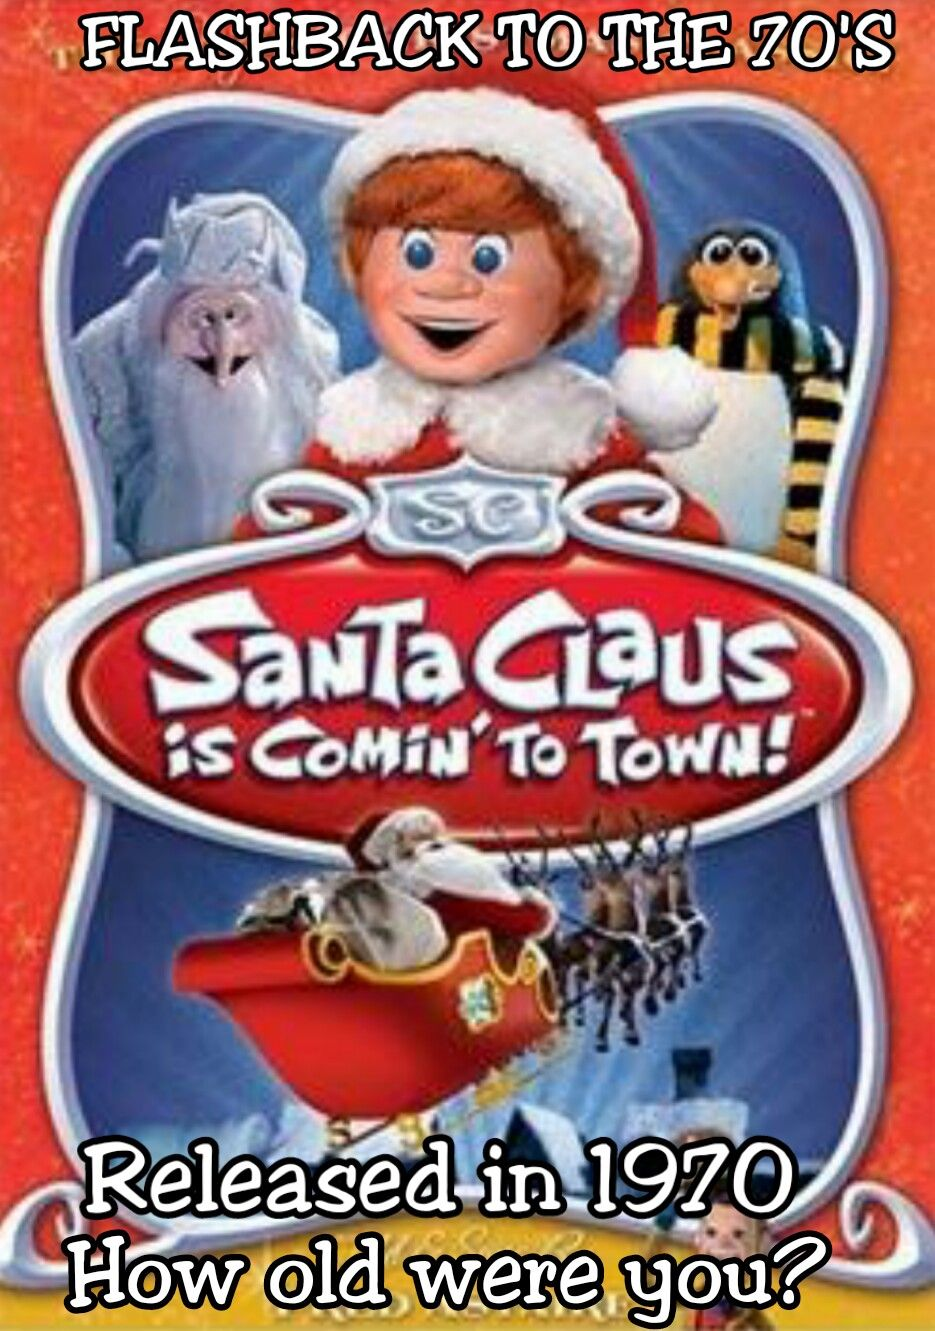 Pin by dia on DEC FB2T70\'S MOVIES | Pinterest | Christmas Movies ...